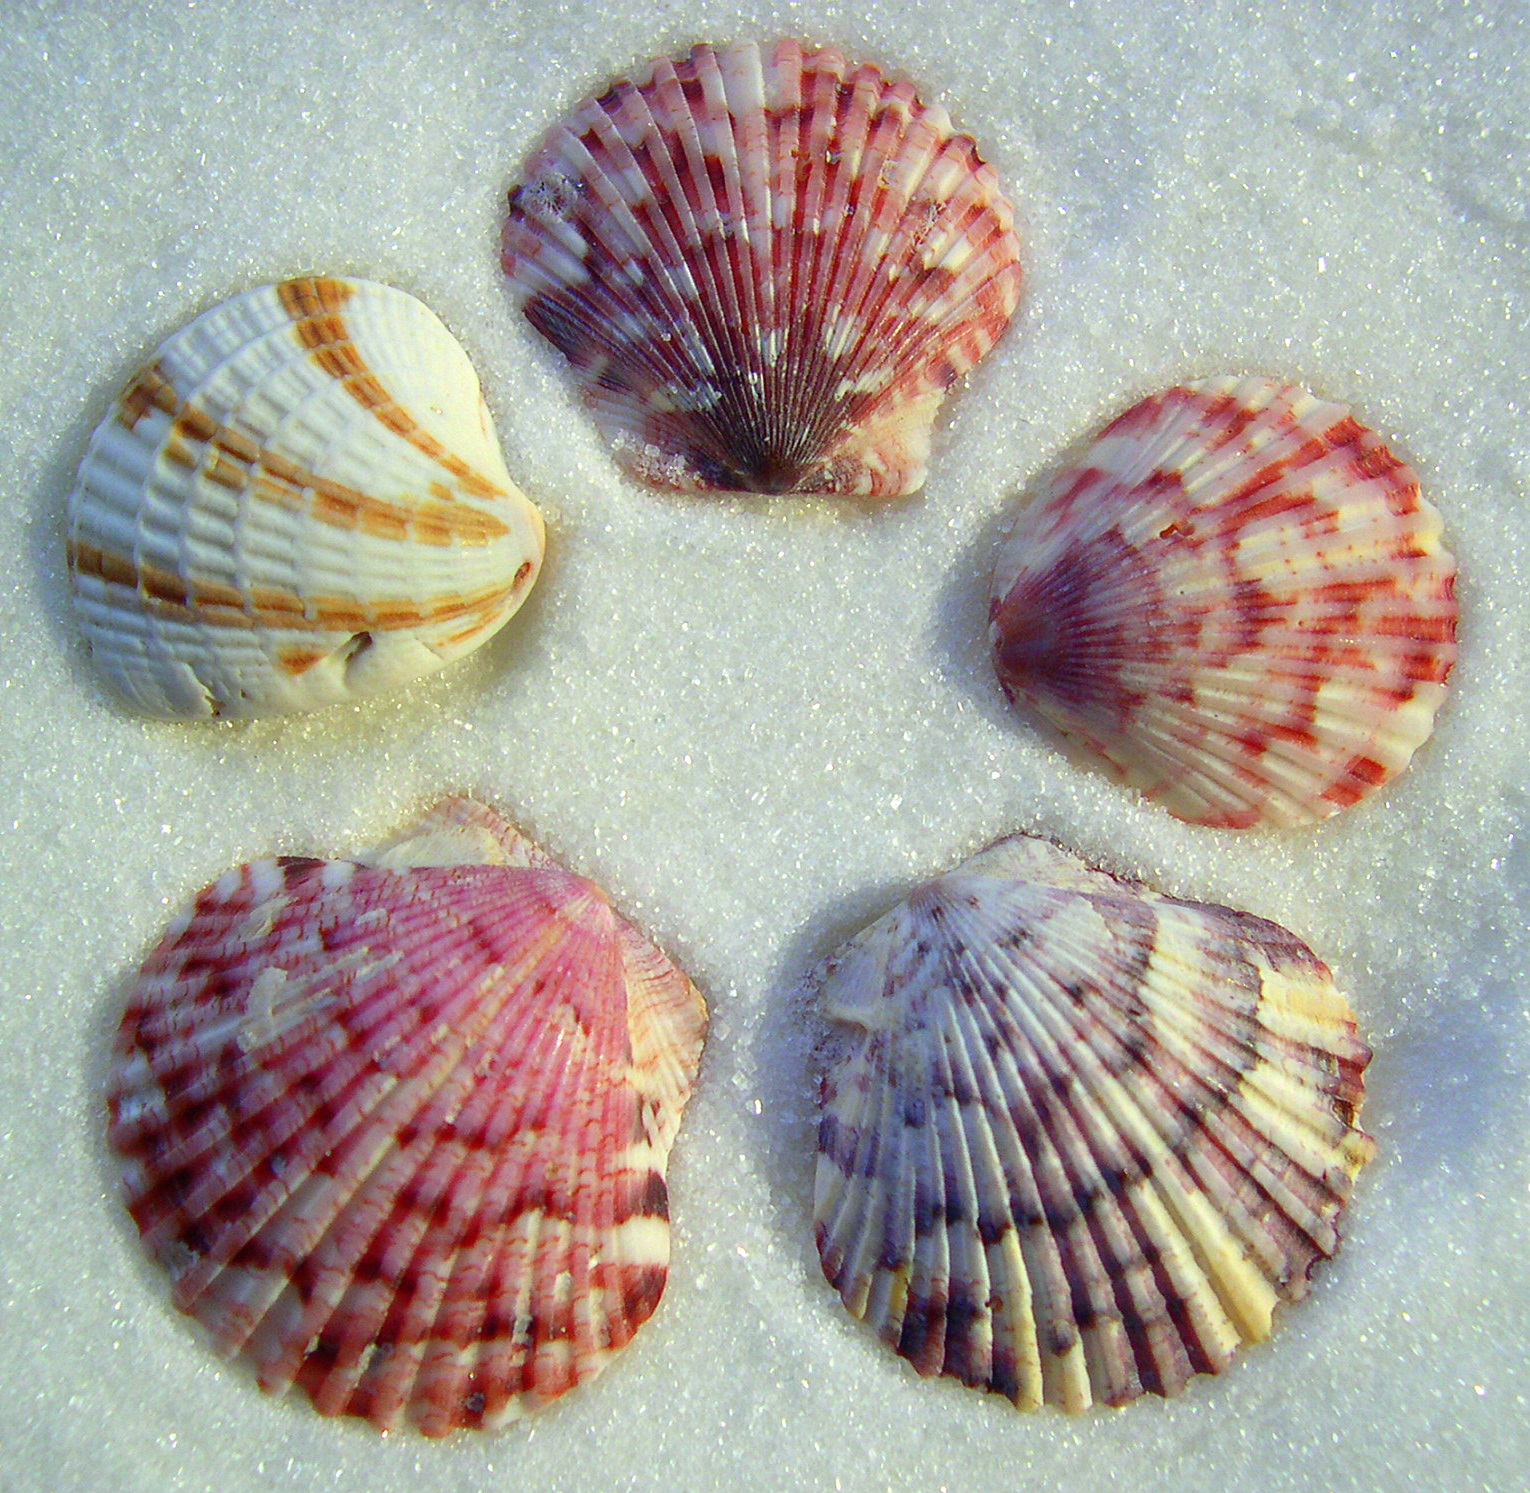 Top Rare Seashell Finds In Florida Seashells By Millhill